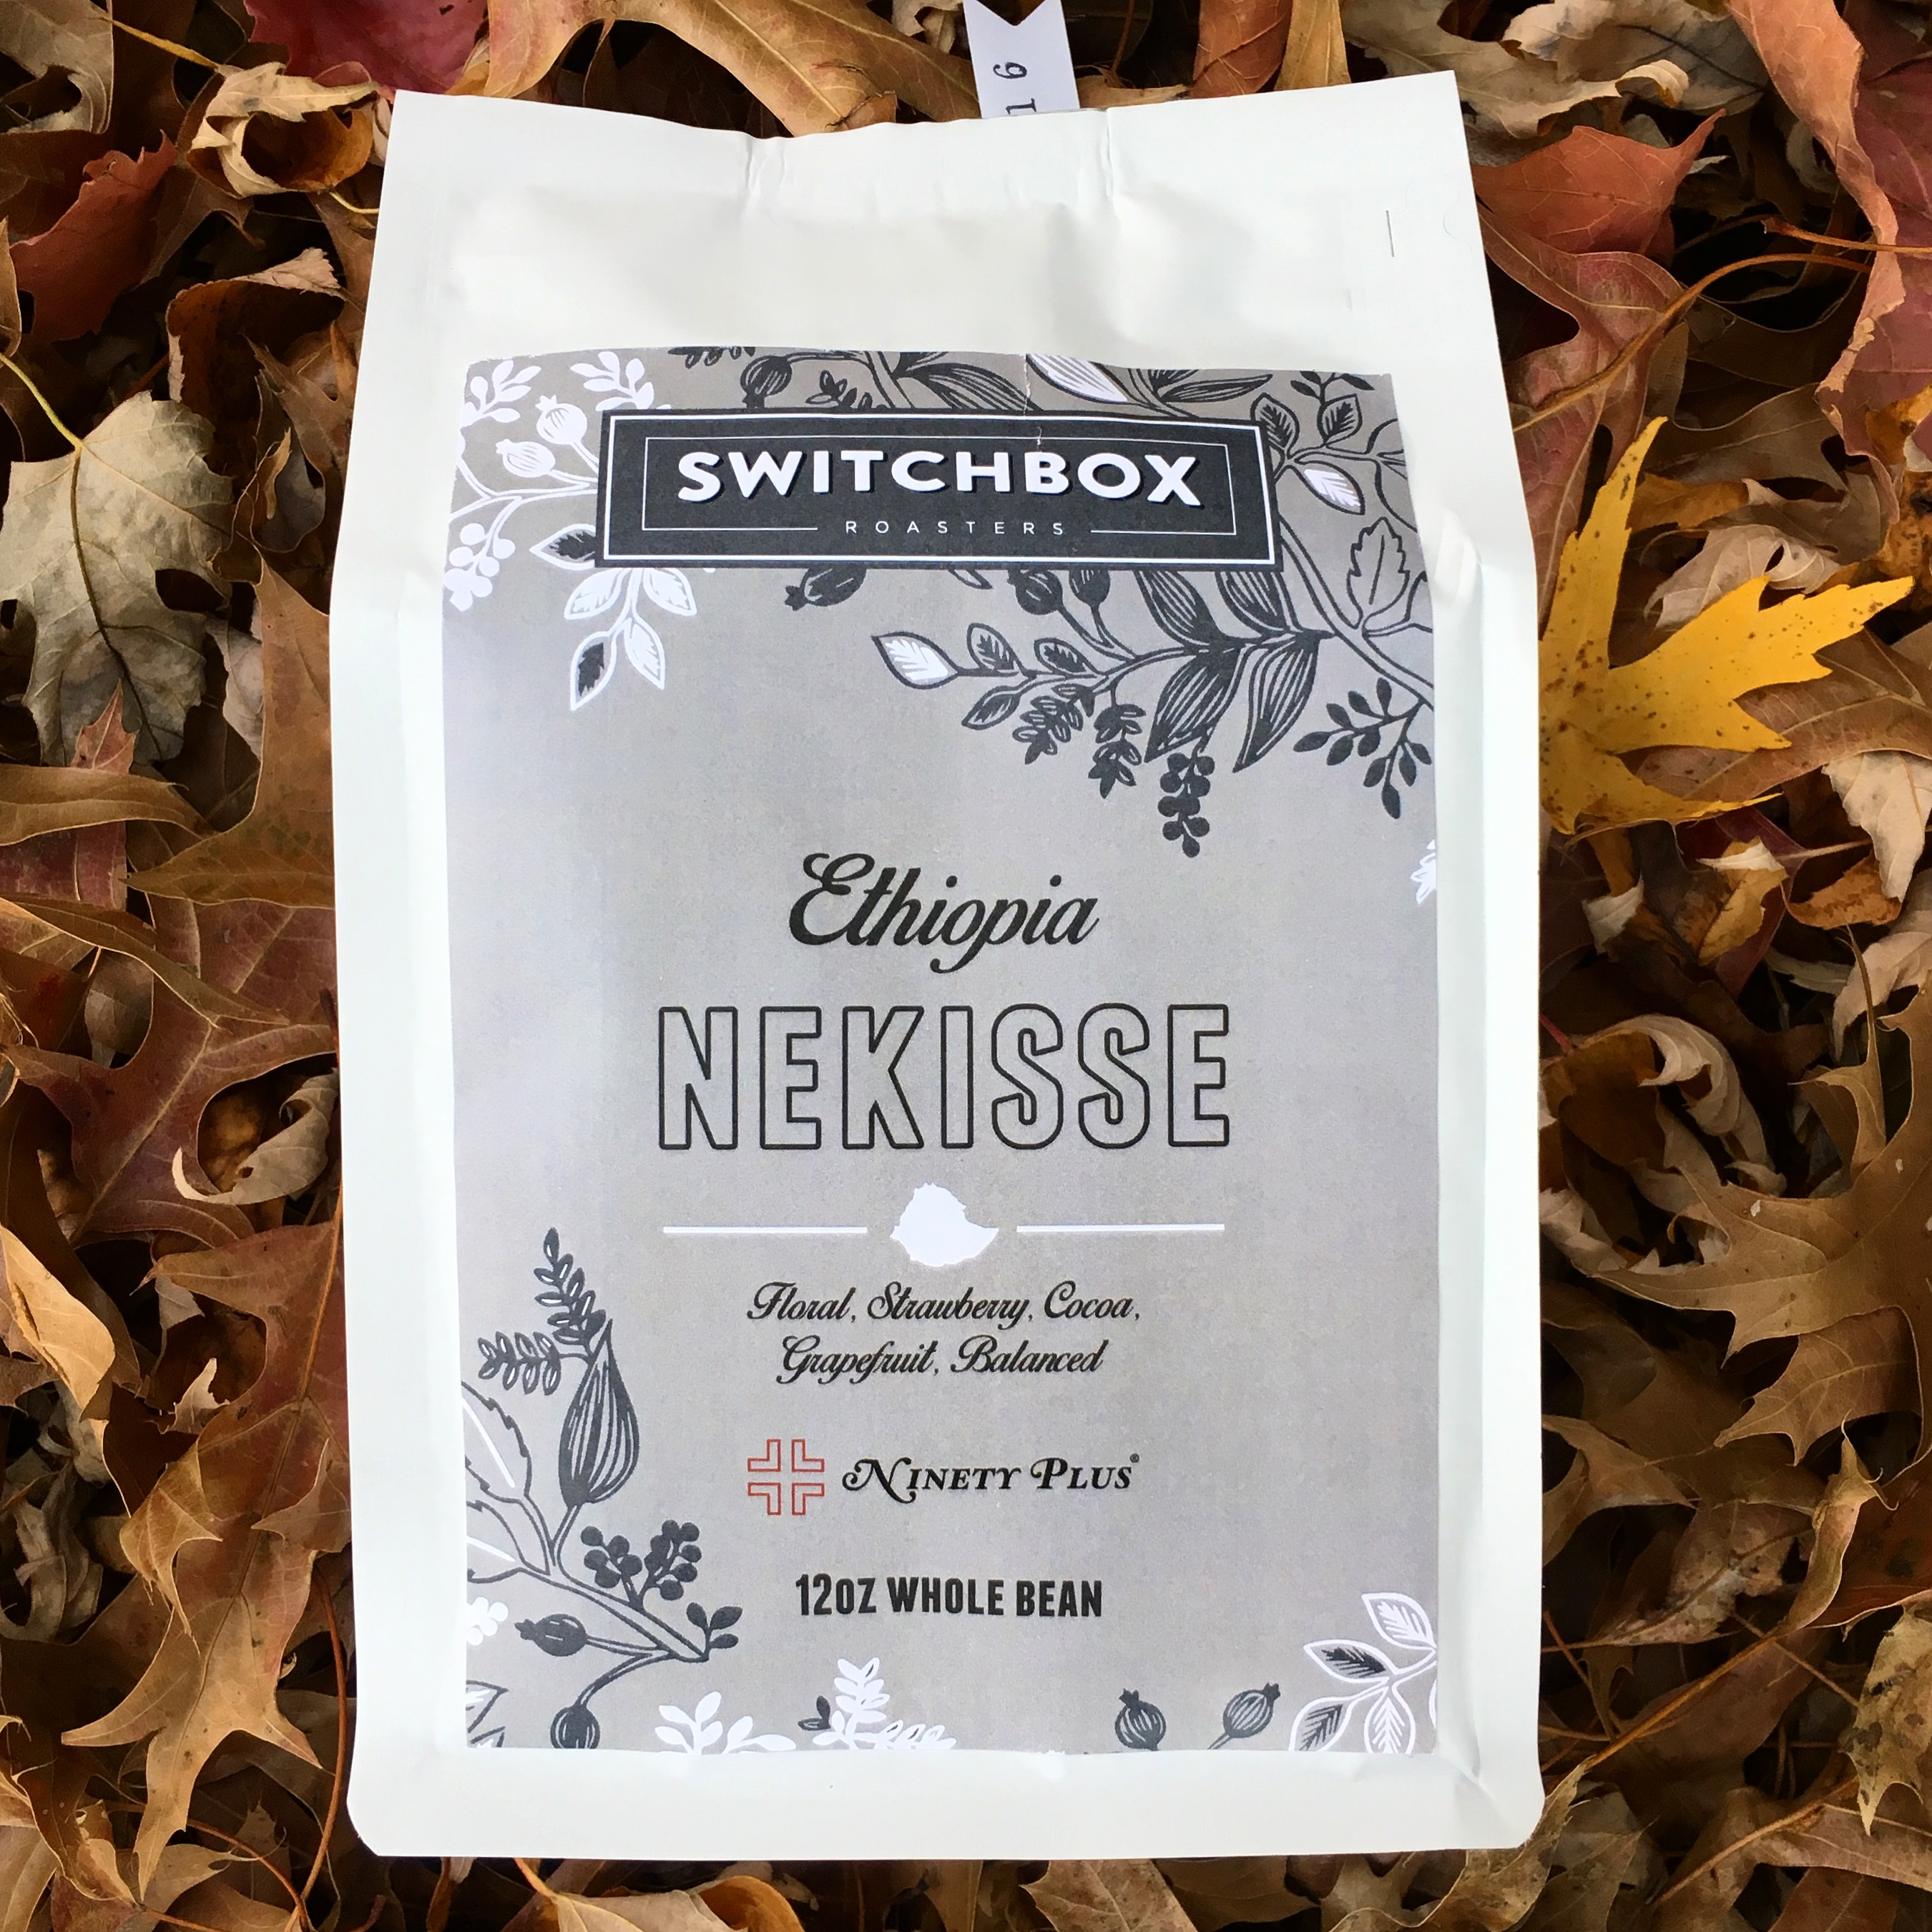 Switchbox Roasters Ninety-Plus Ethiopia Nekisse